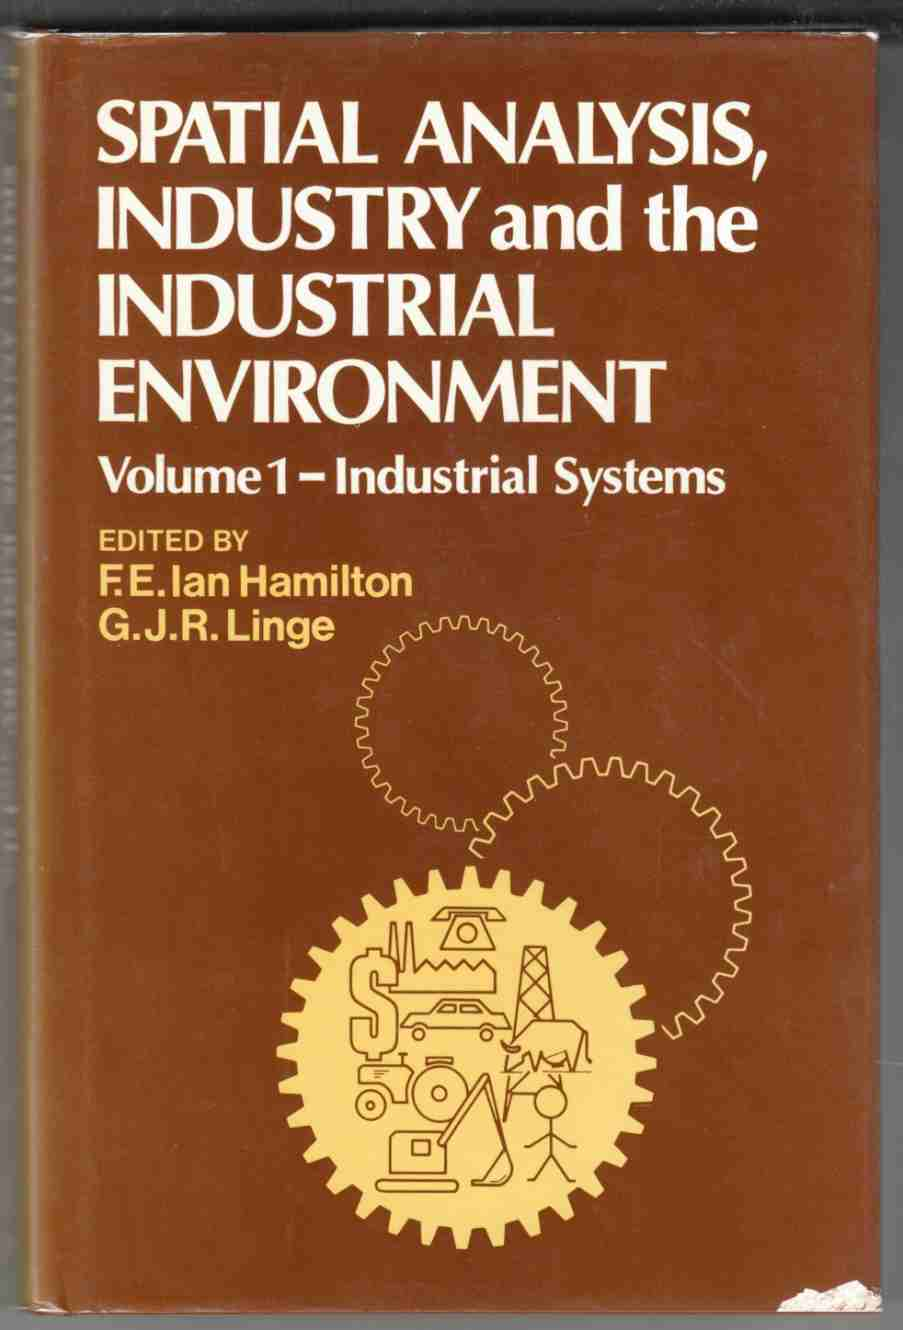 Image for Spatial Analysis, Industry and the Industrial Environment Volume 1 - Industrial Systems